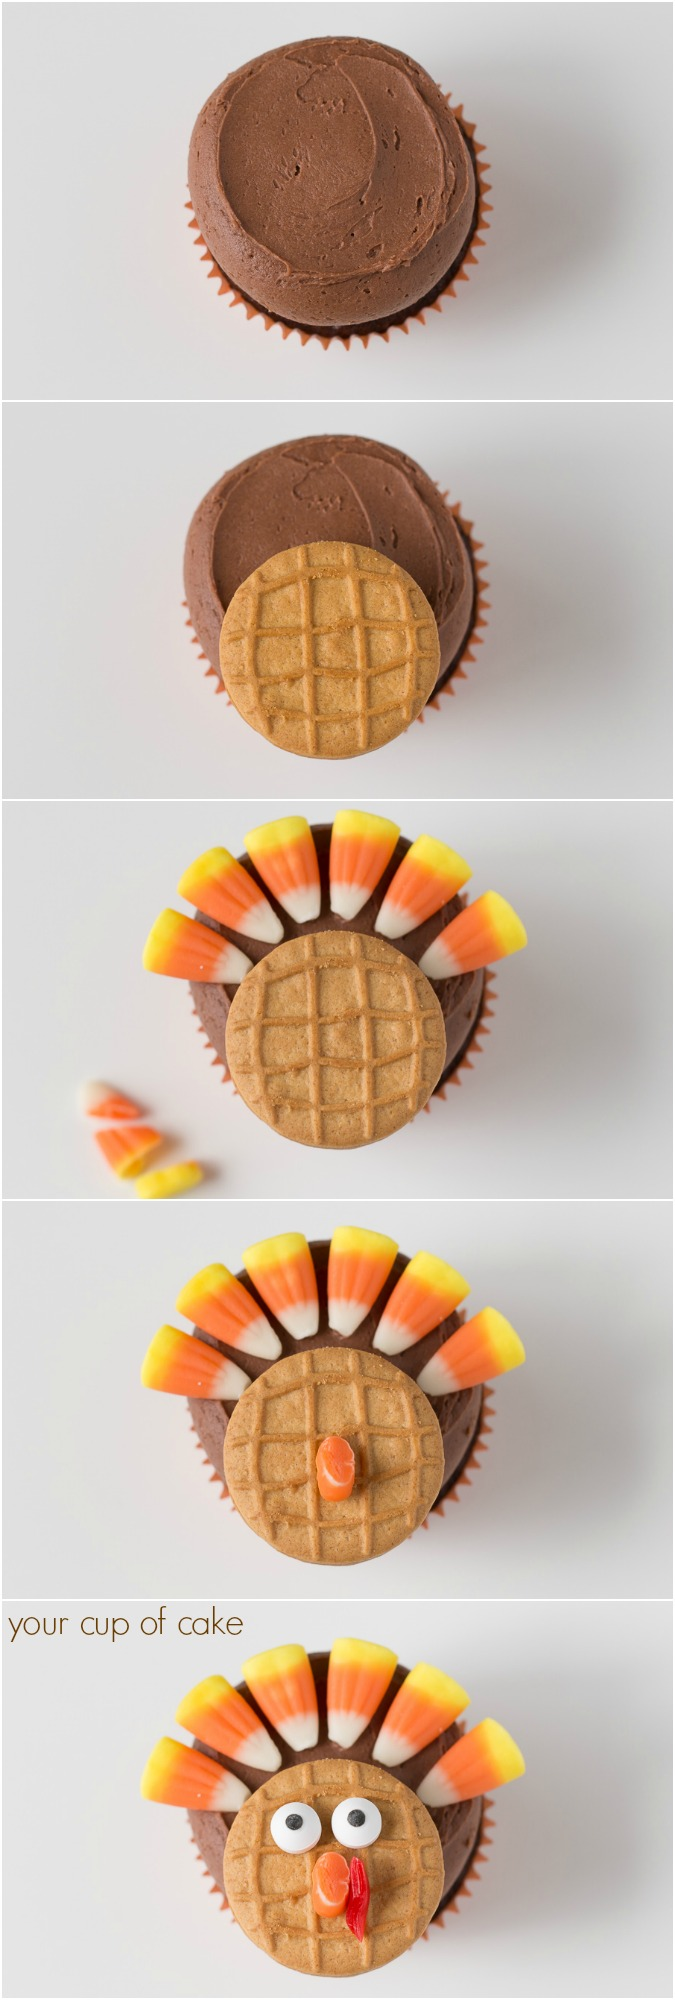 How to Make Turkey Cupcakes for Thanksgiving